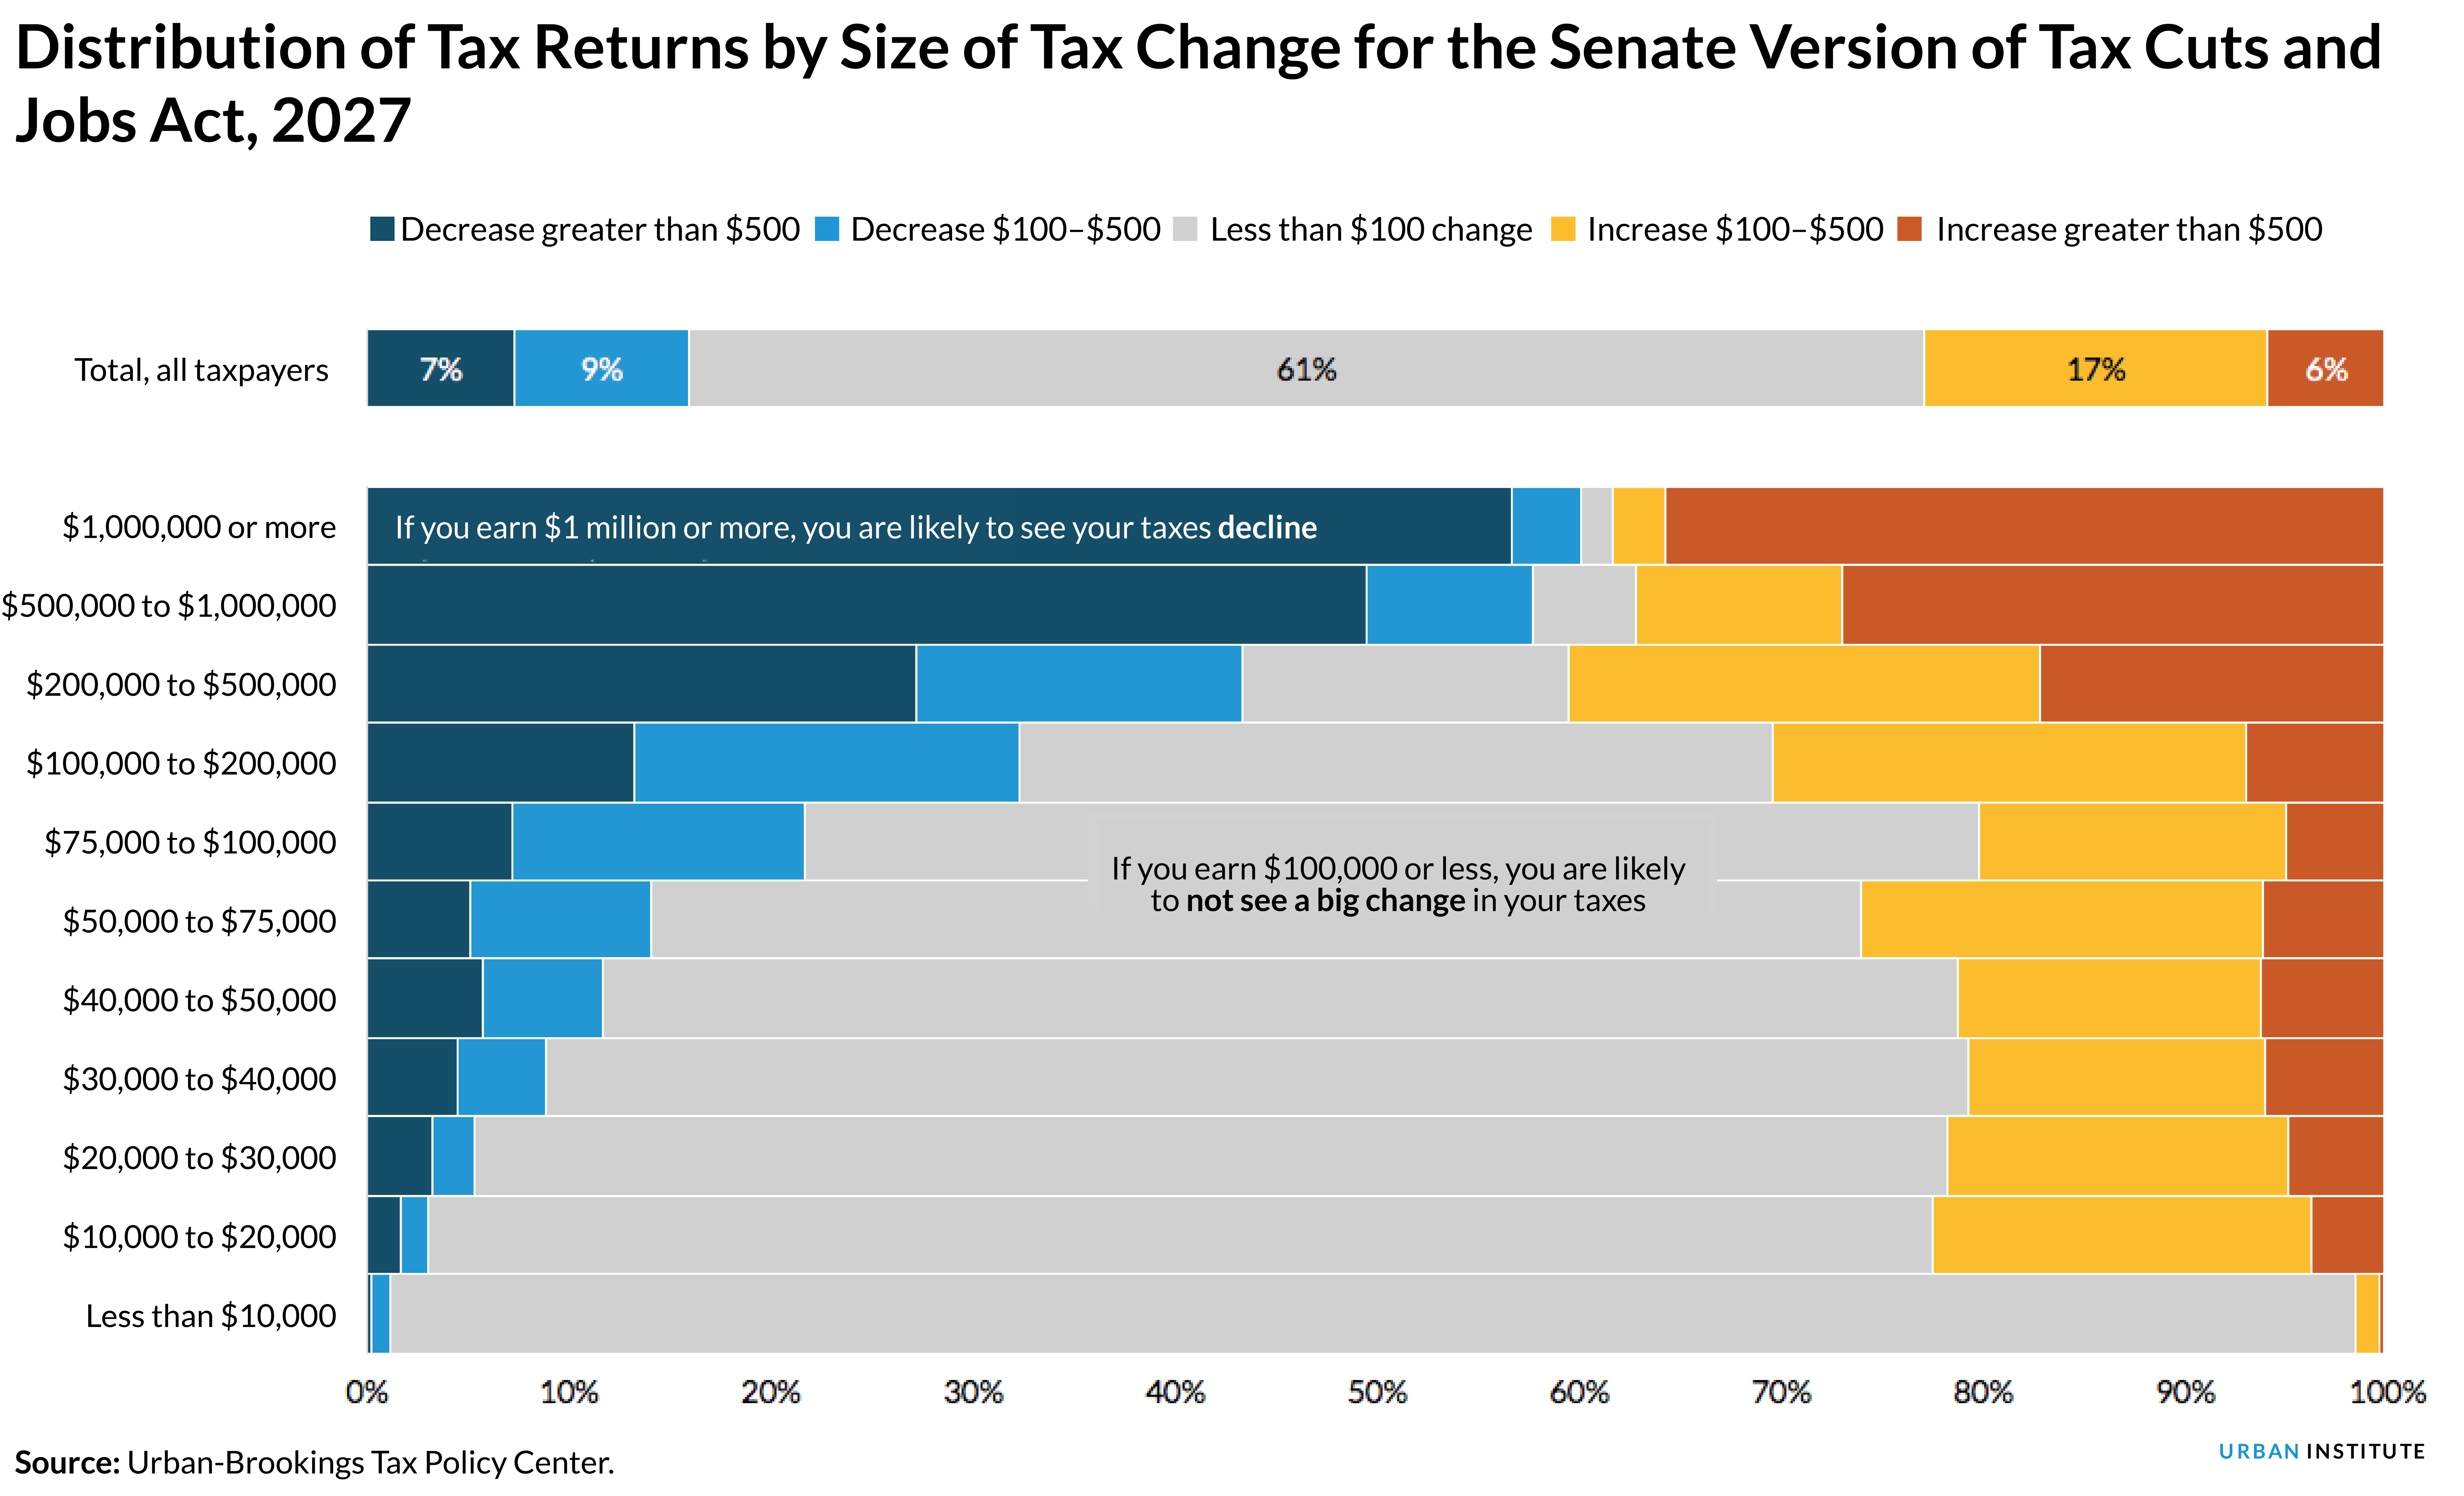 distribution of tax returns for size of tax change under the Senate version of the Tax Cut and Jobs Act, 2027